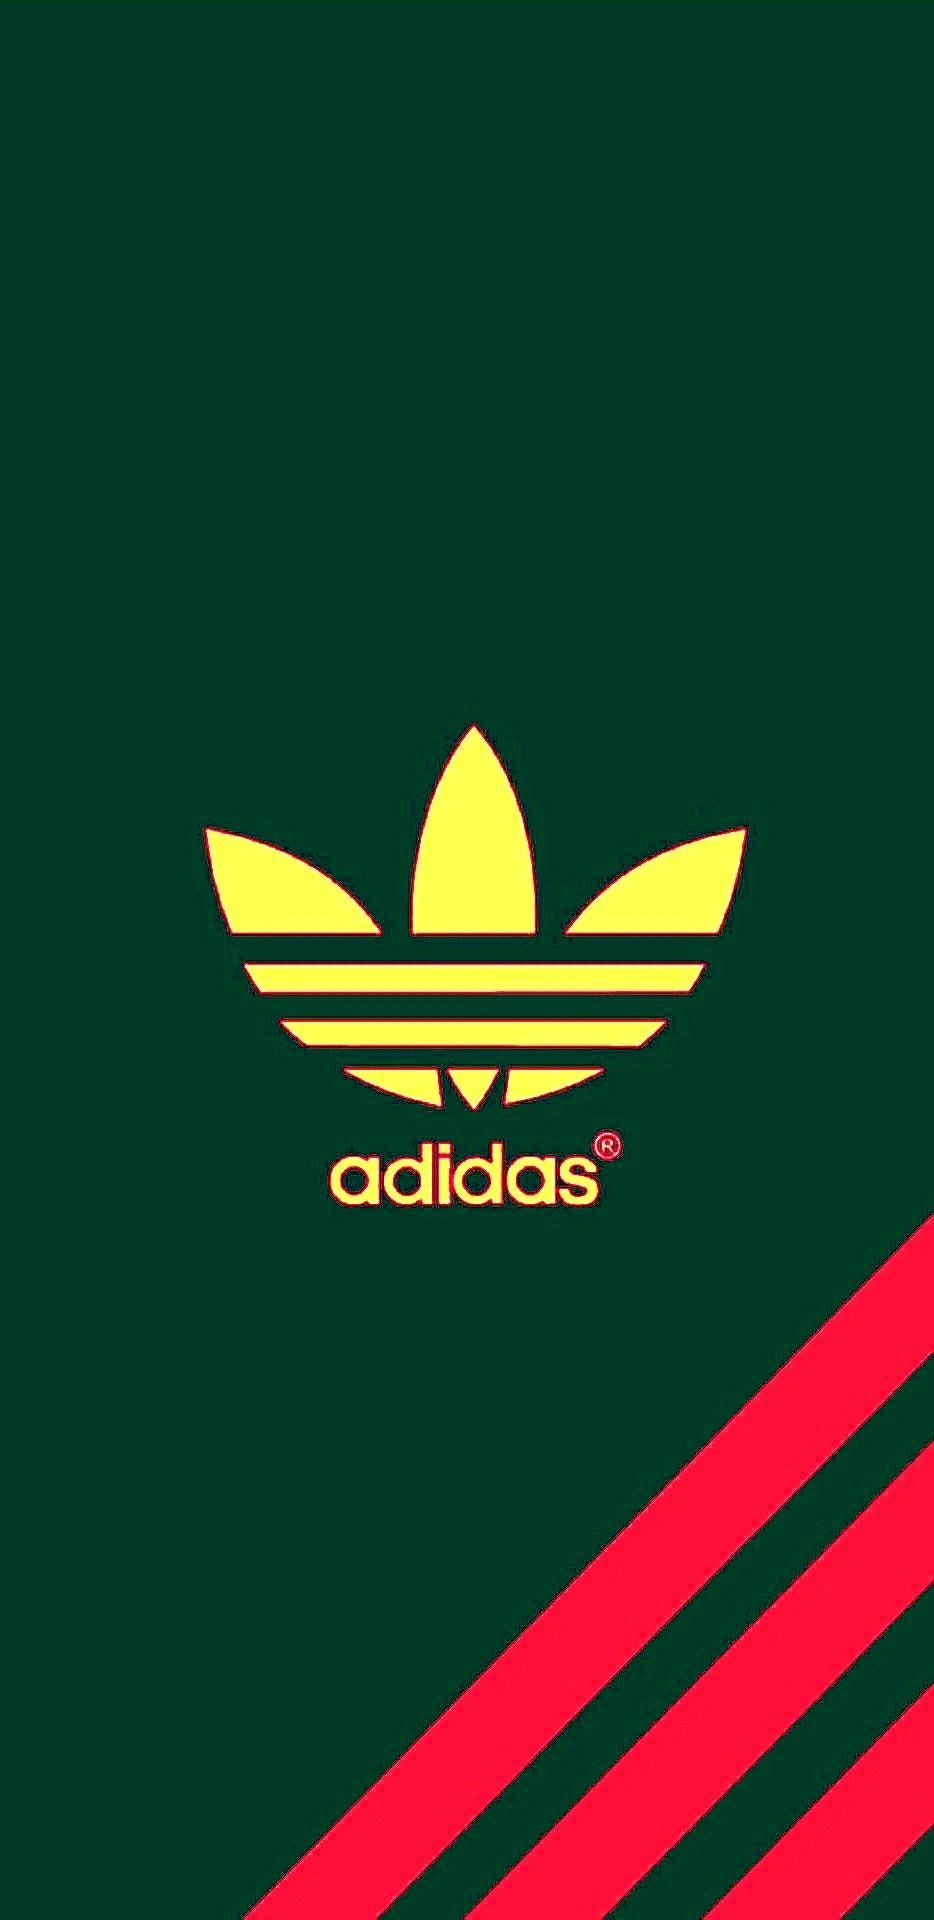 Adidas Three Stripes Iphone Wallpaper Background In Stiker Dinding Lux 5 23pr